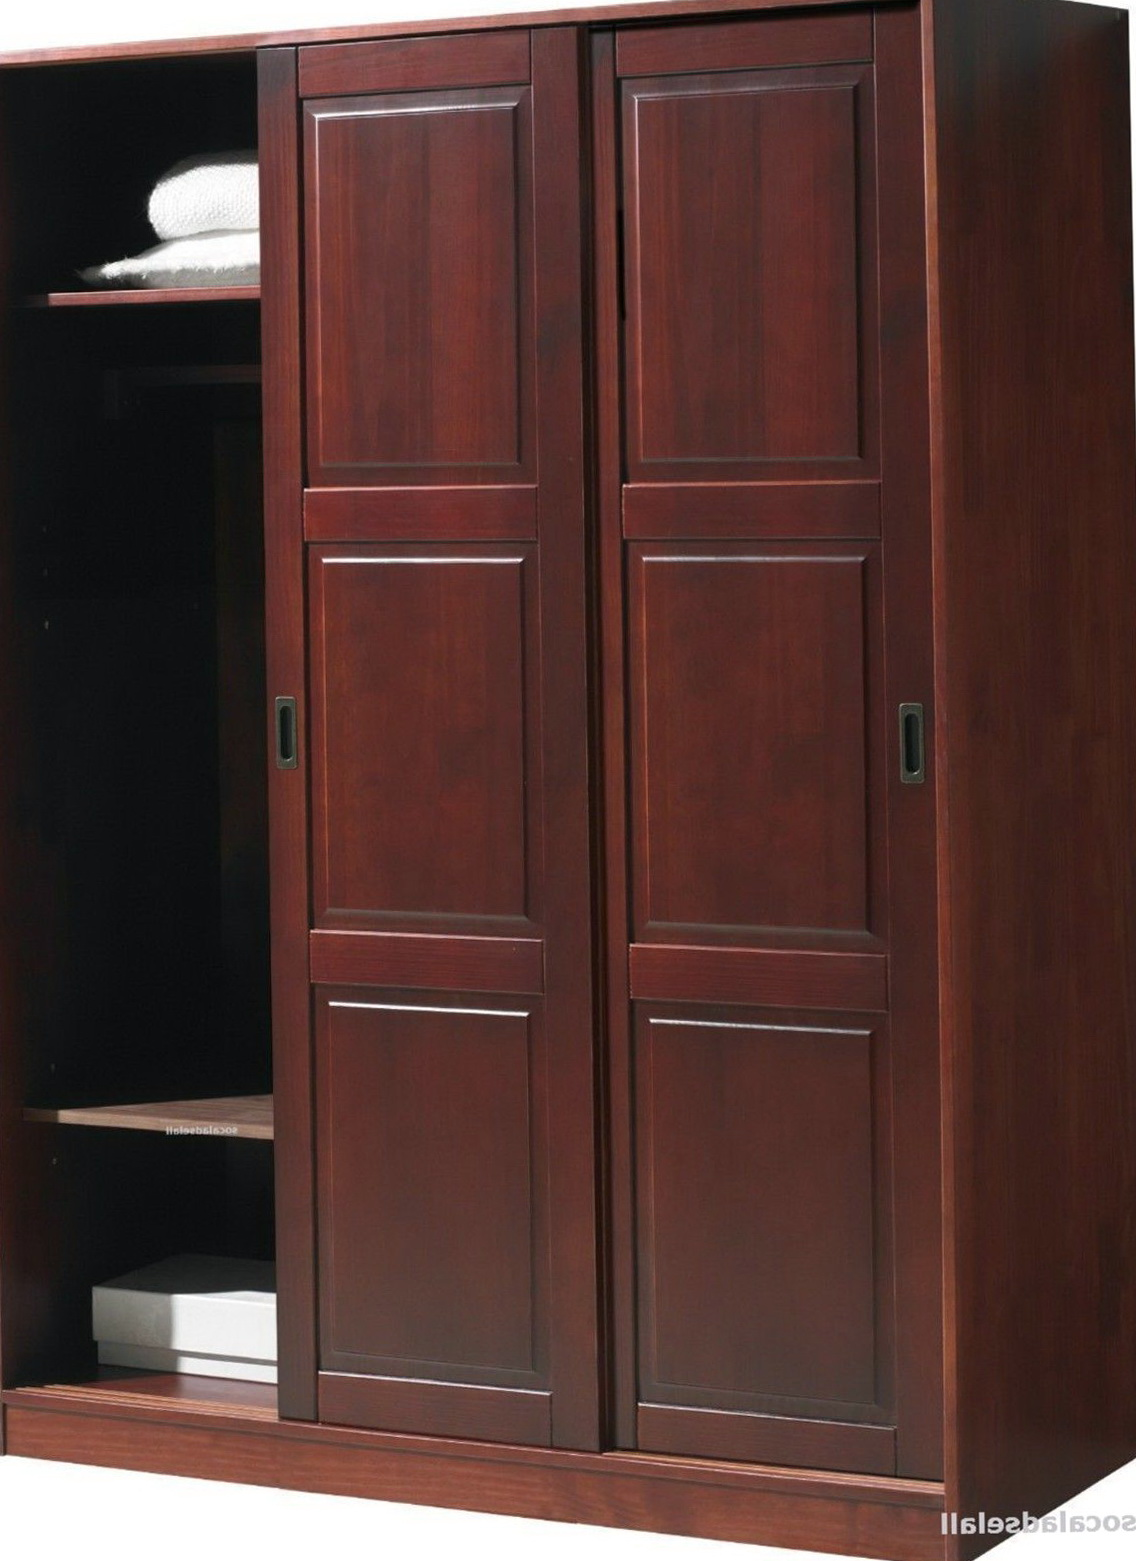 Sliding Wood Closet Doors Lowes Home Design Ideas